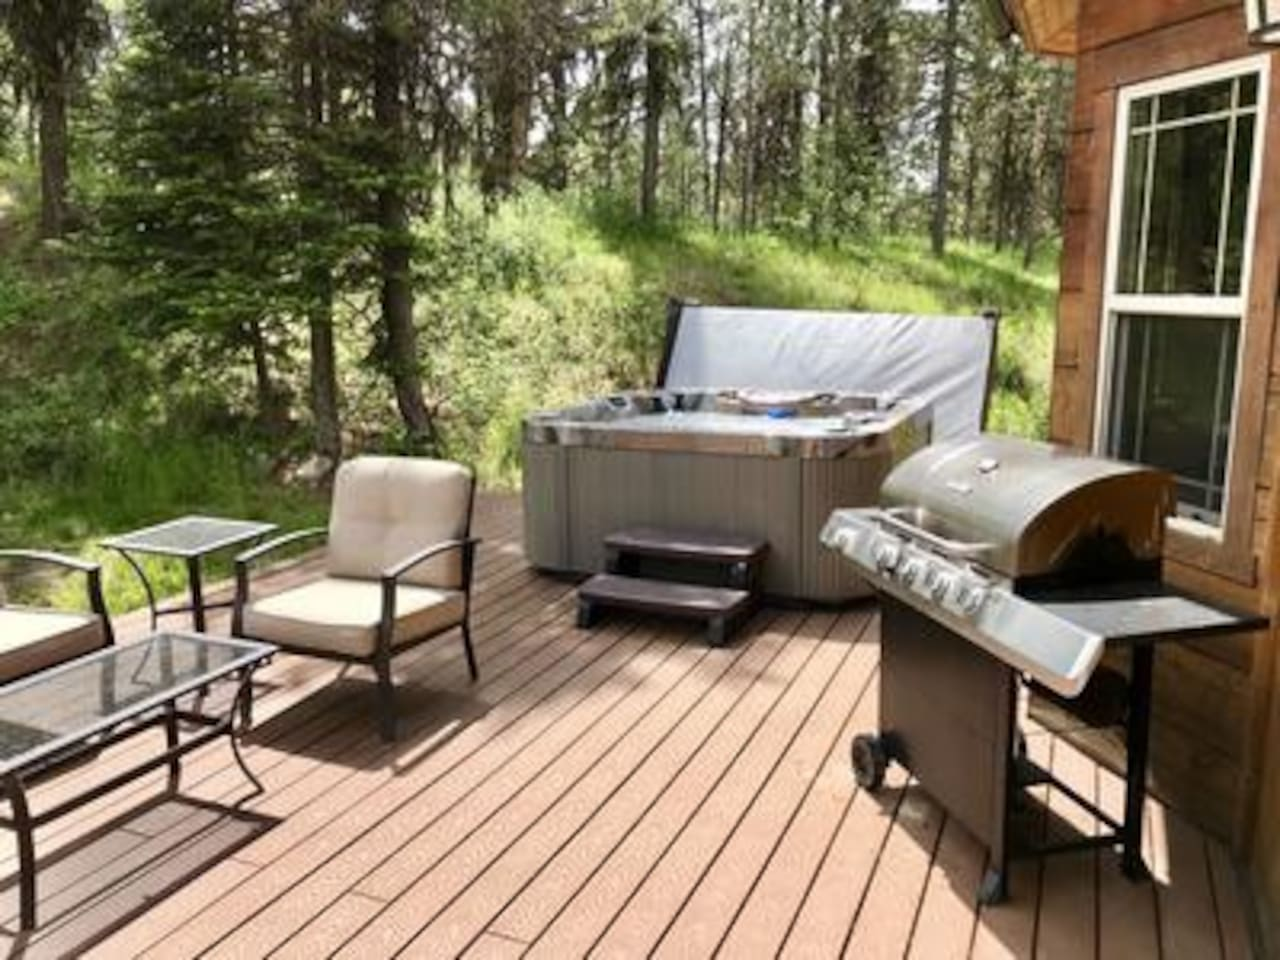 Hot tub with Grill and Patio Furniture, Overlook a Stream in the Backyard